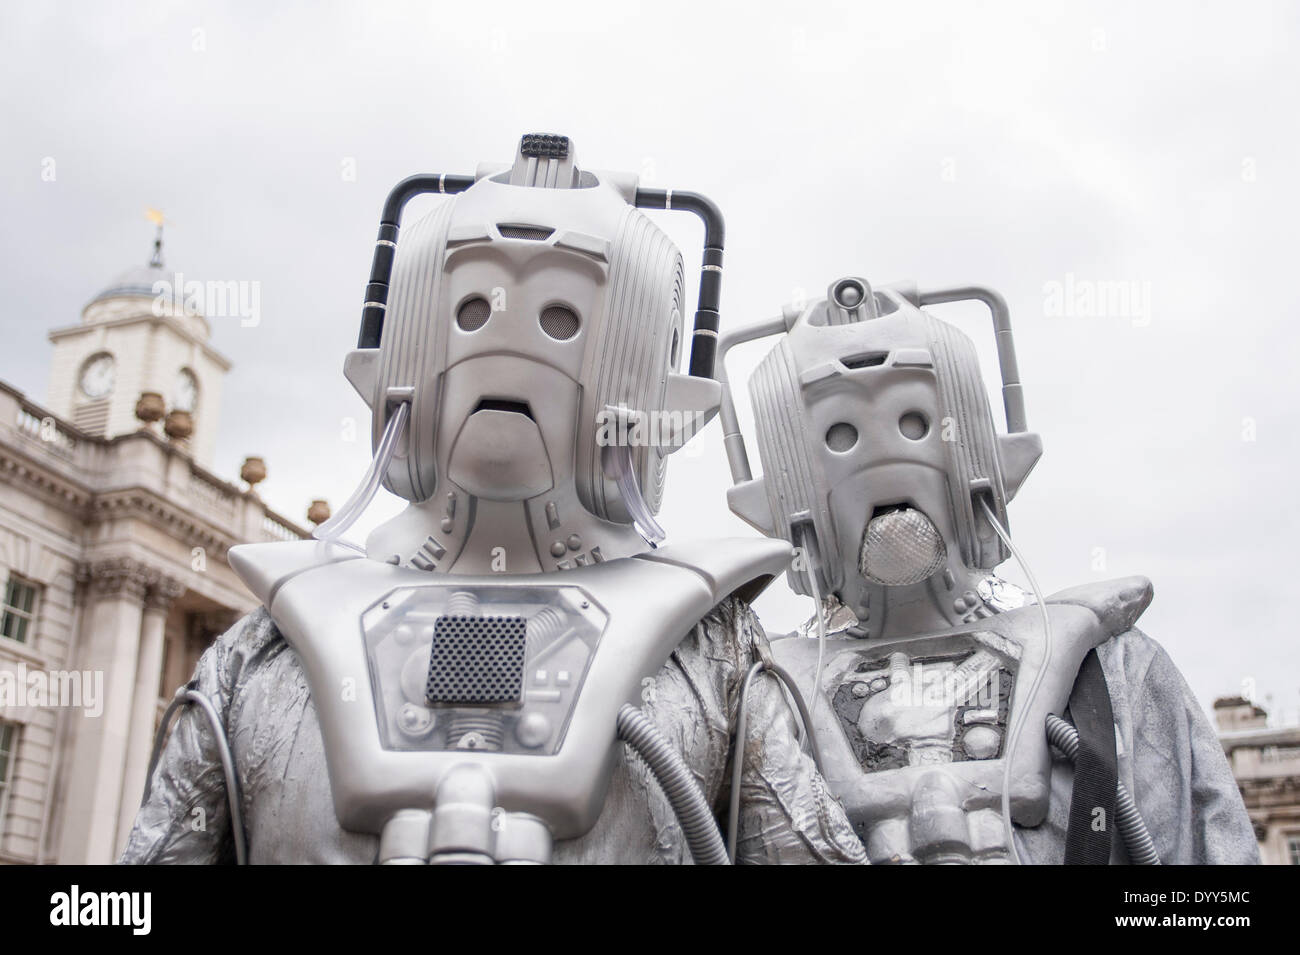 London, 27 April 2014 - people dressed as their favourite sci-fi characters take part in the Sci-Fi London 2014 costume parade starting at Somerset House and finishing at the BFI on the South Bank. Two cybermen in Somerset House.      Credit:  Stephen Chung/Alamy Live News - Stock Image